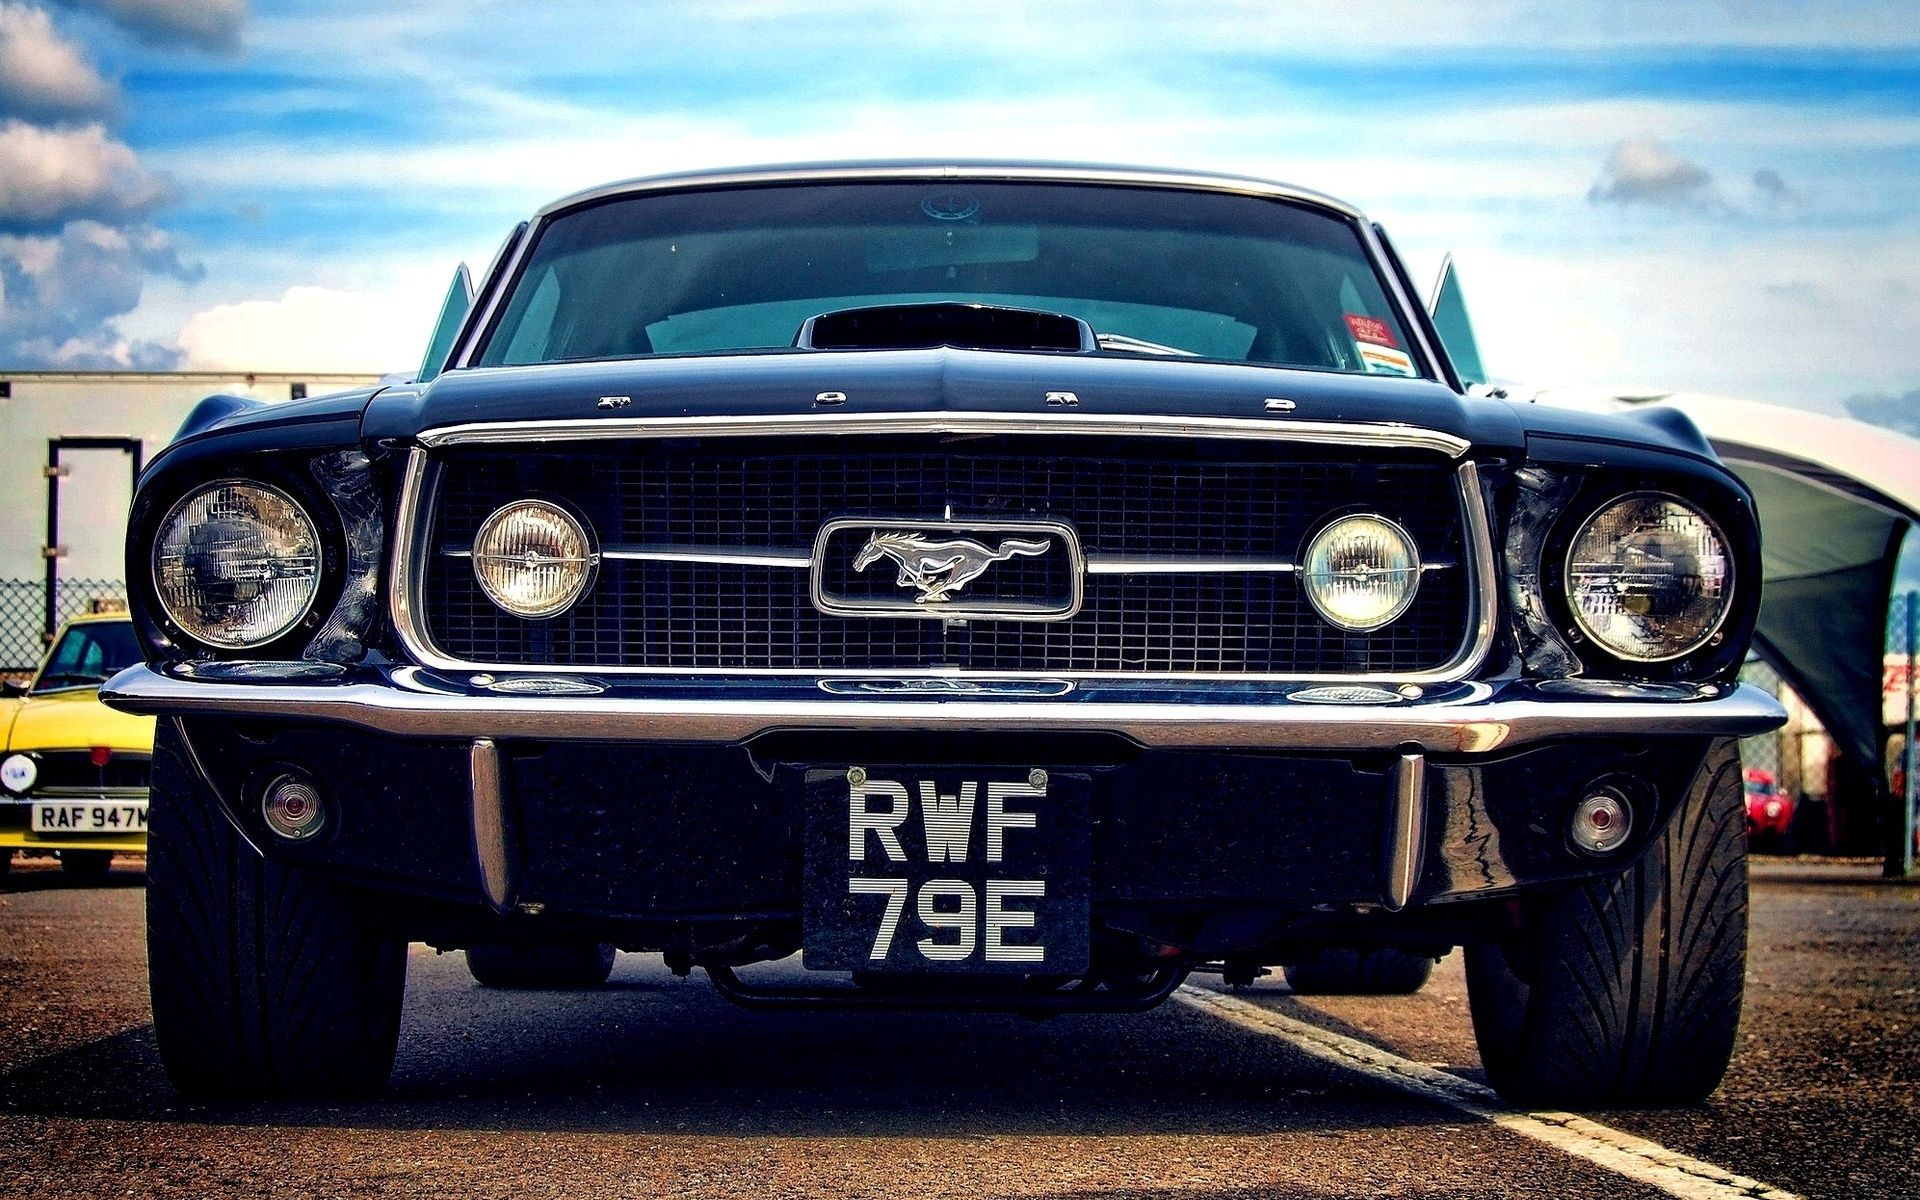 1969 ford vintage mustang this would be my dream car in navy blue with white